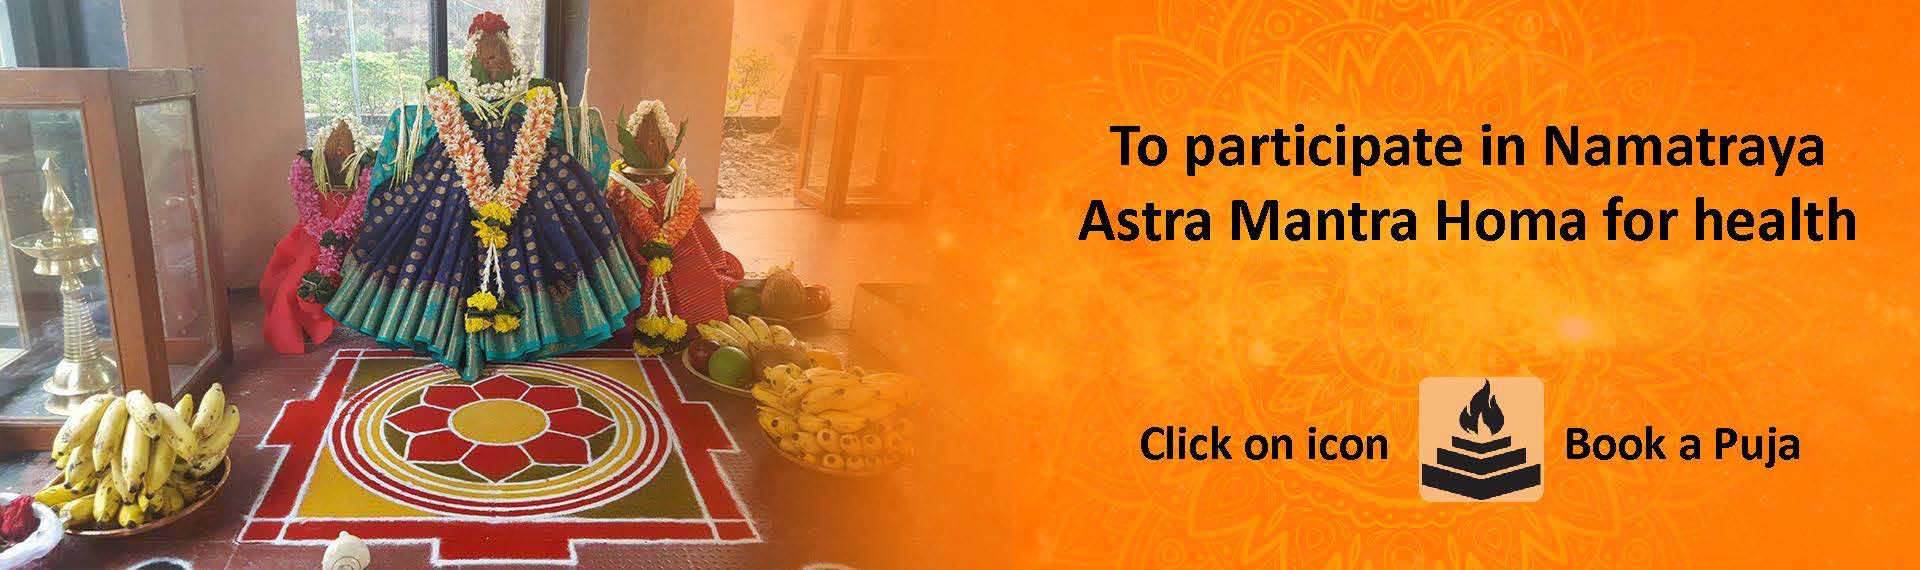 Namatraya astra mantra home for health